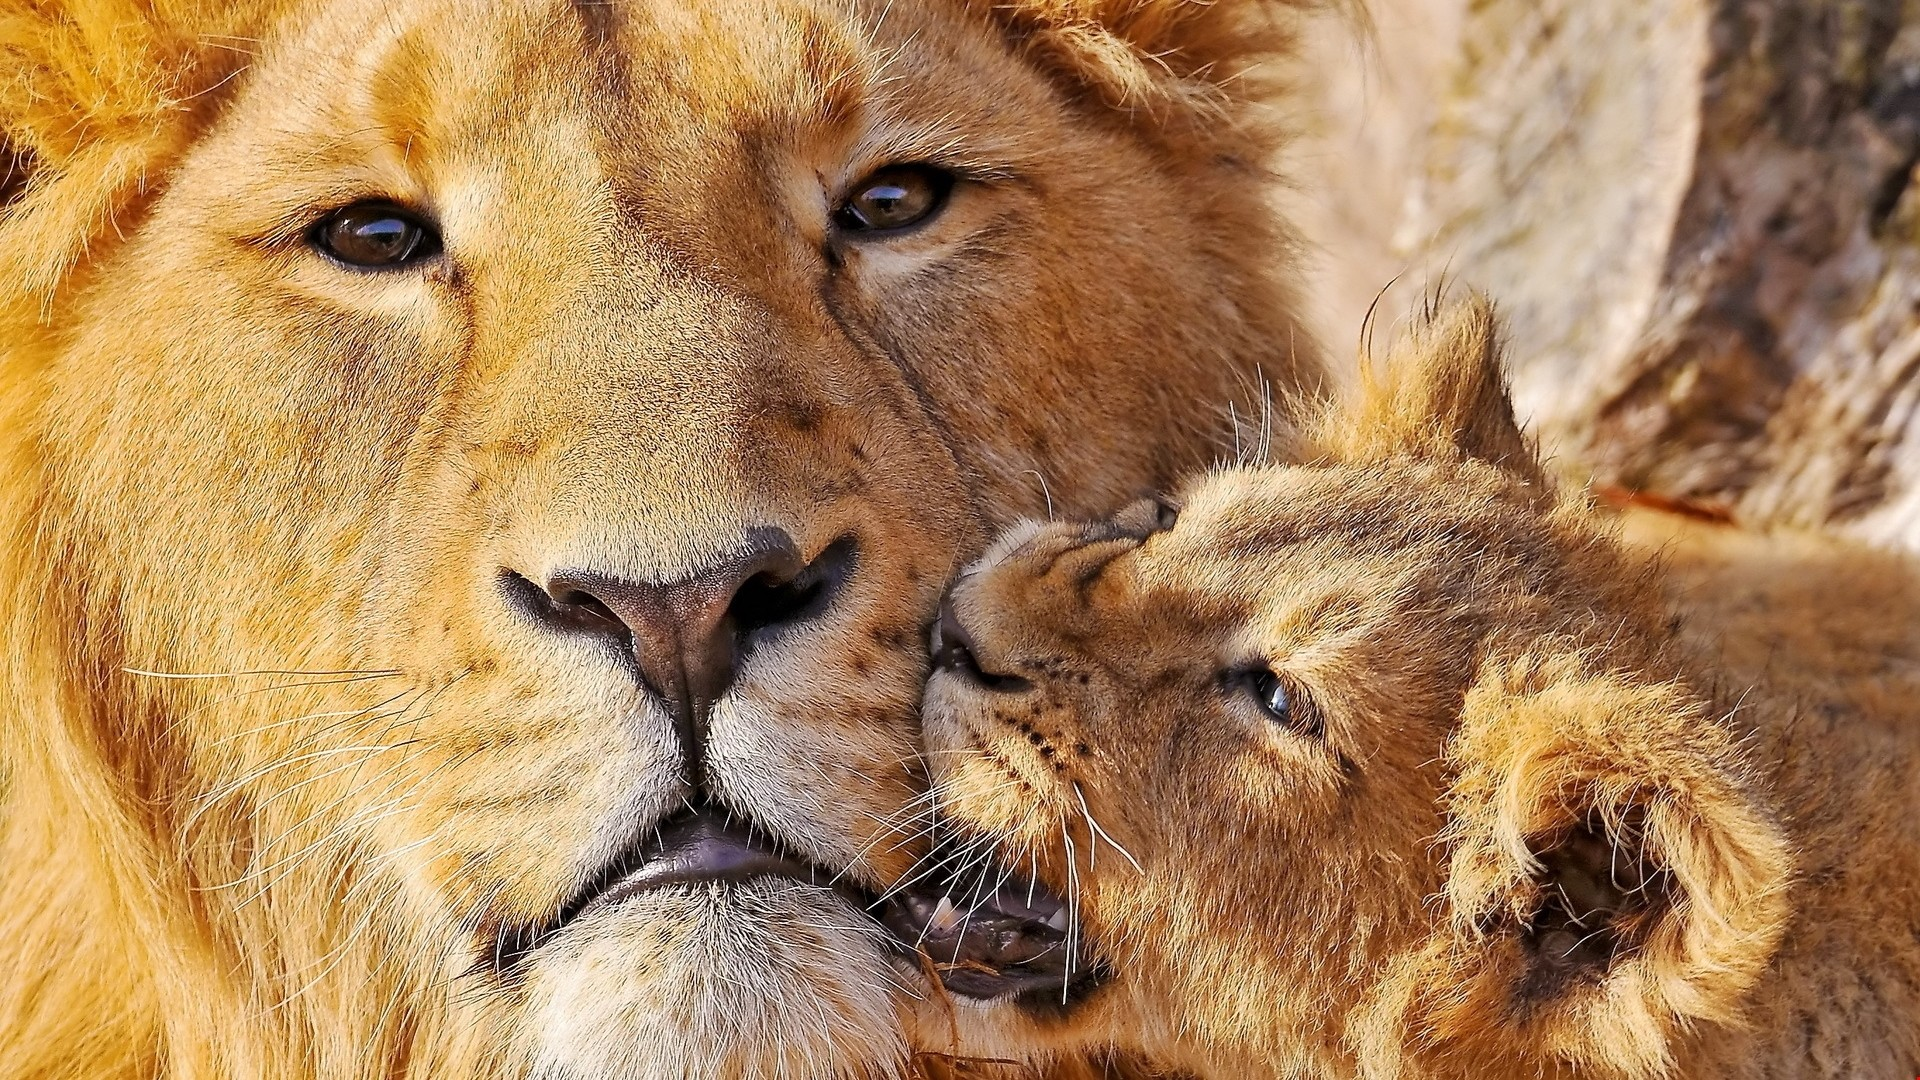 Res: 1920x1080, Download 1k lion, face, cub - Animals Wallpapers HD